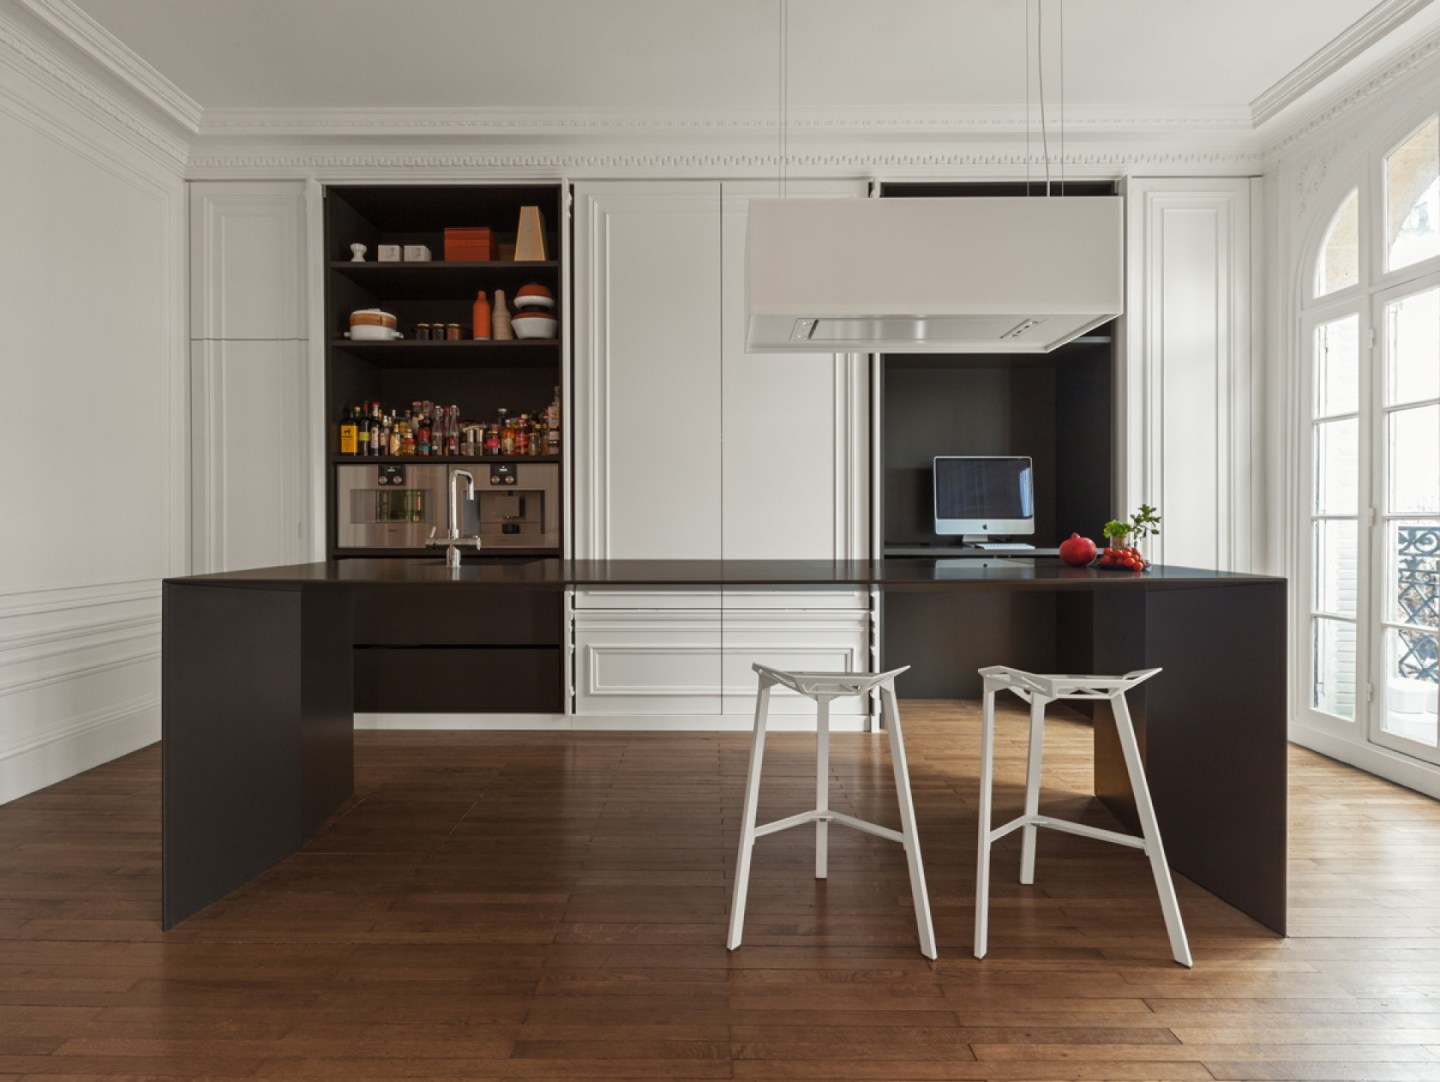 7 - Invisible kitchen - design by 129